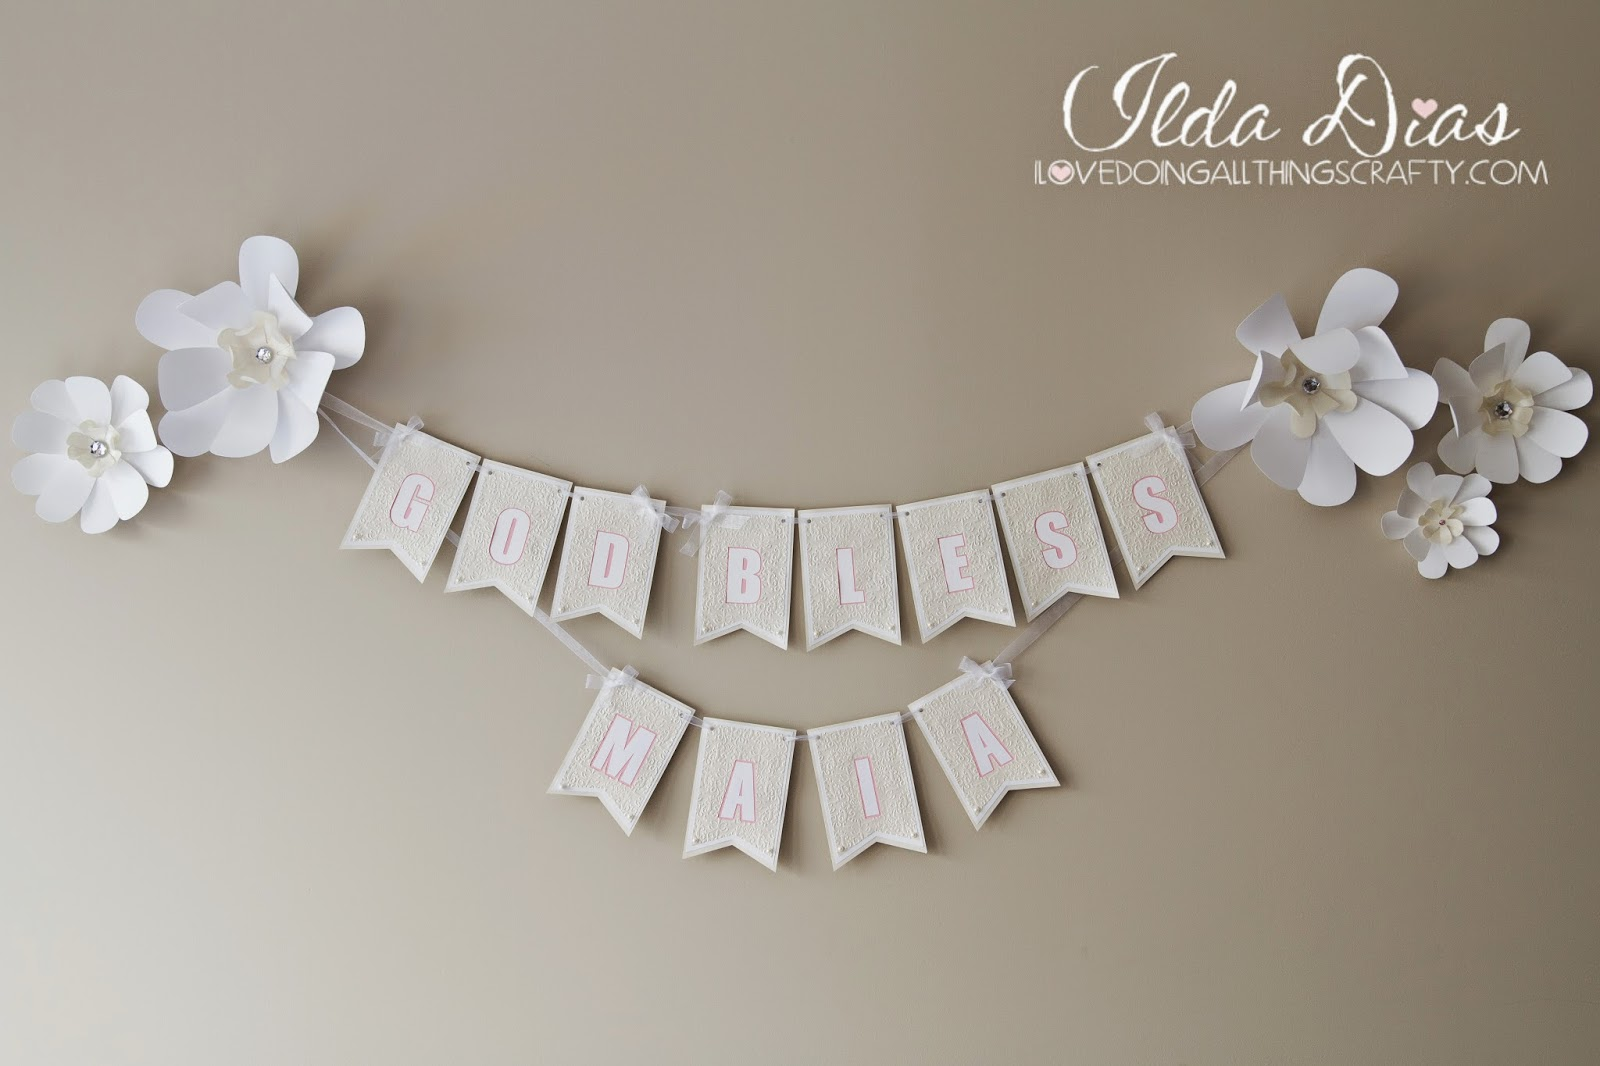 I love doing all things crafty first communion day diy decor here is a closer look at the details solutioingenieria Choice Image